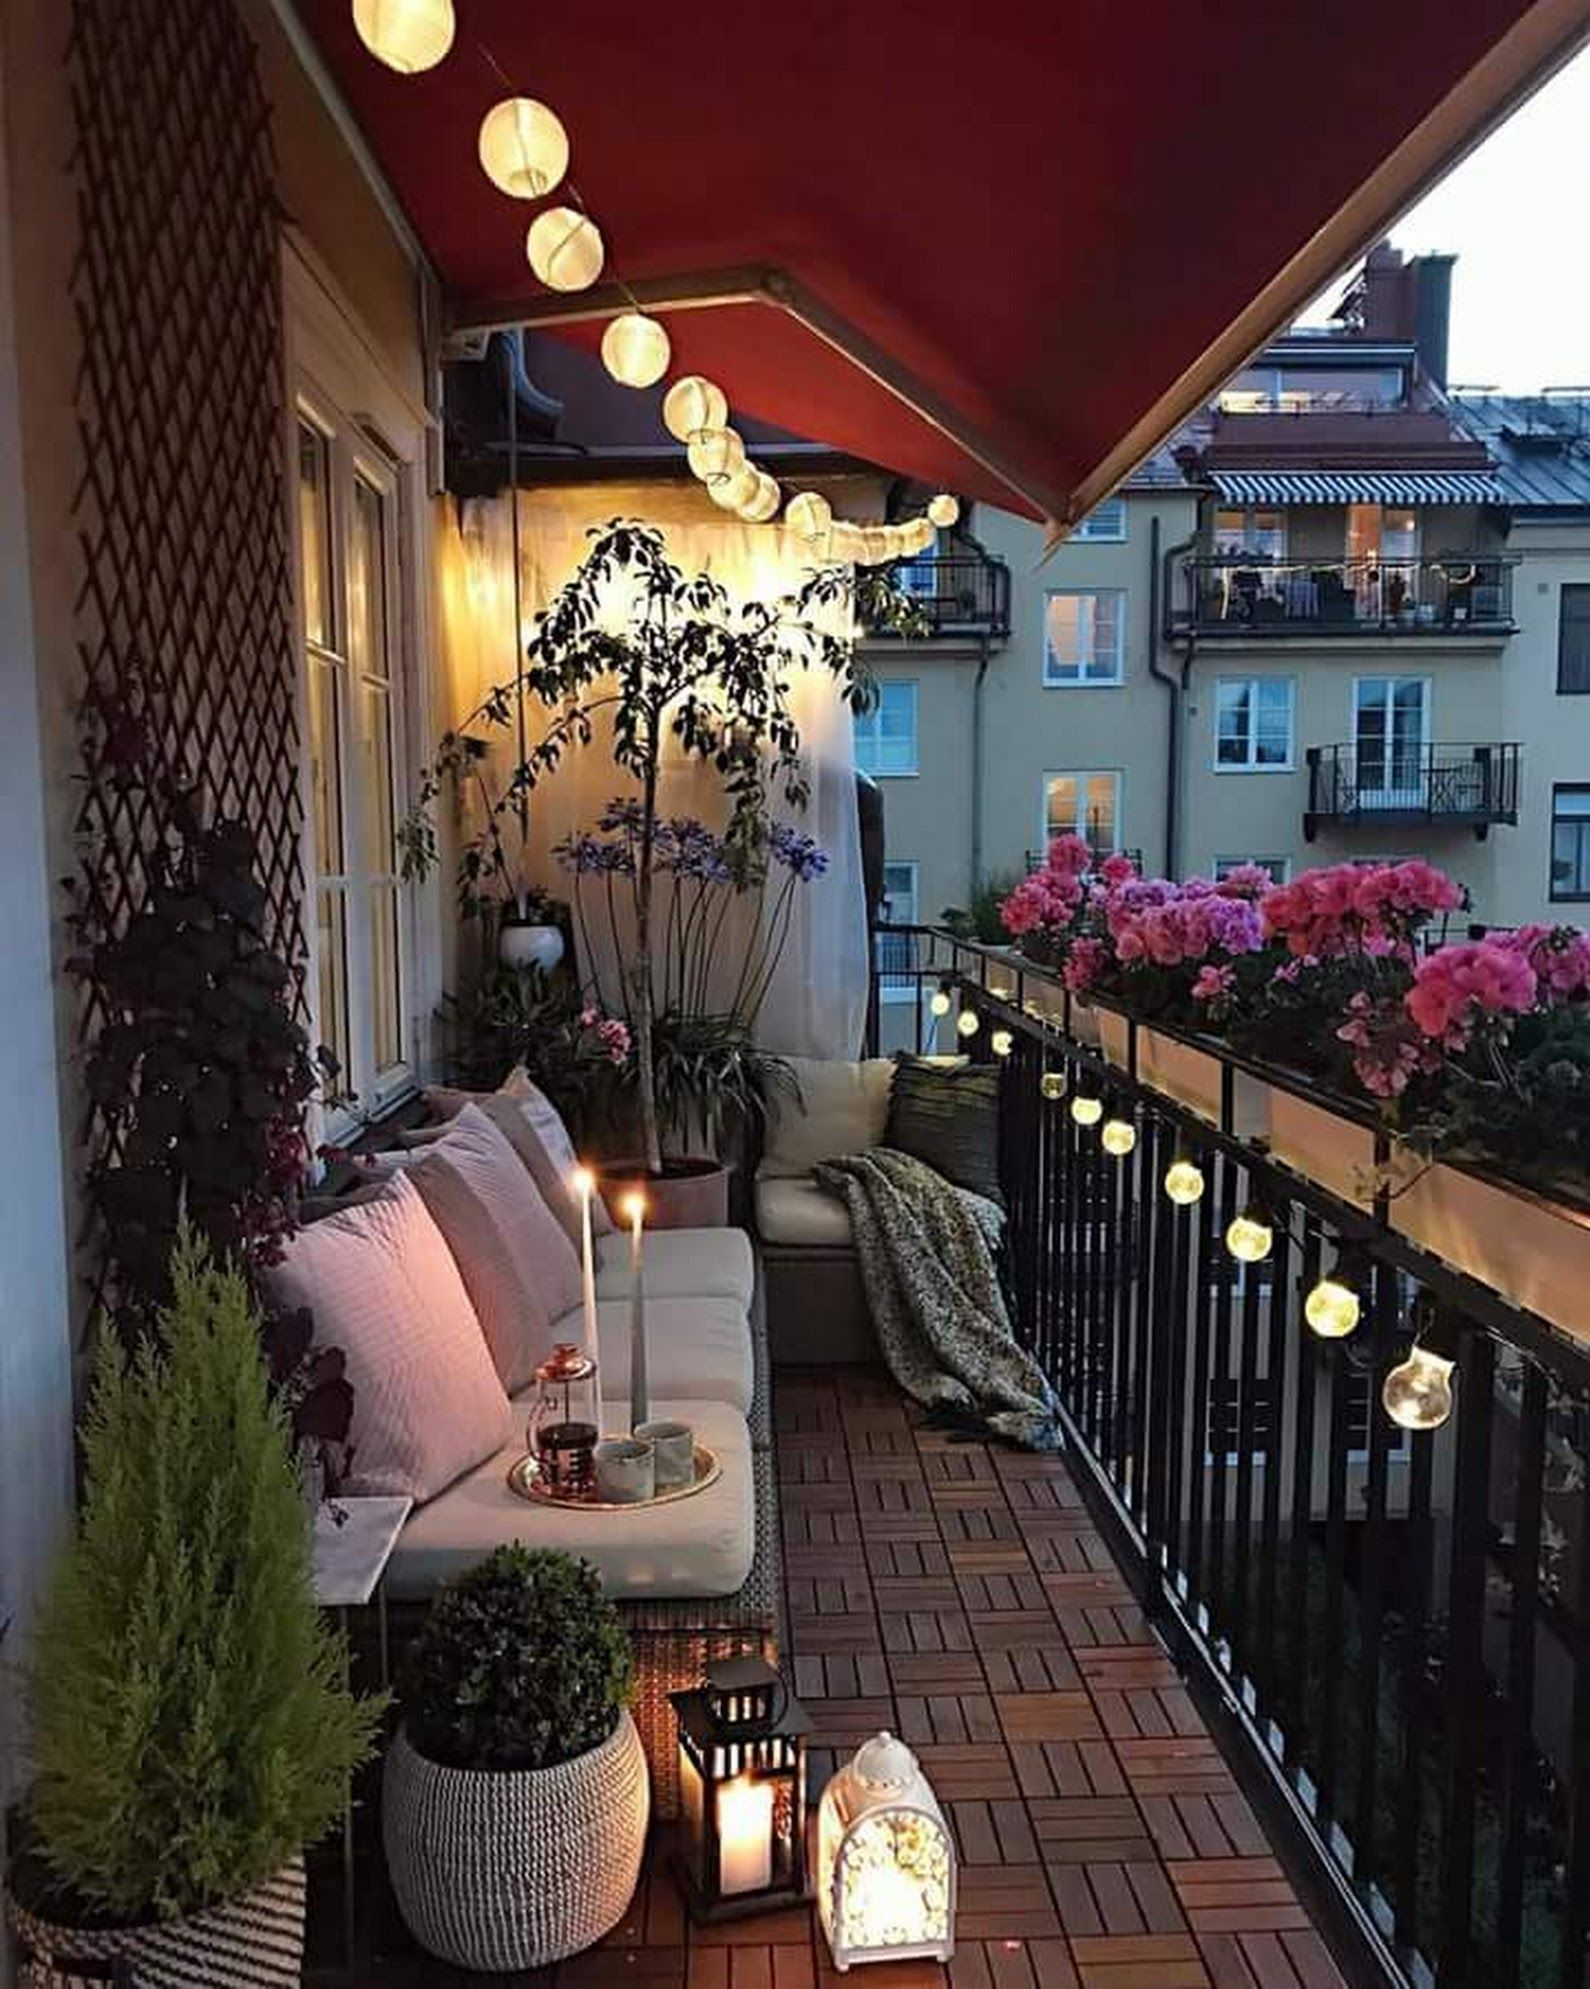 The Best Decorated Small Outdoor Balconies on Pinterest – living after midnite